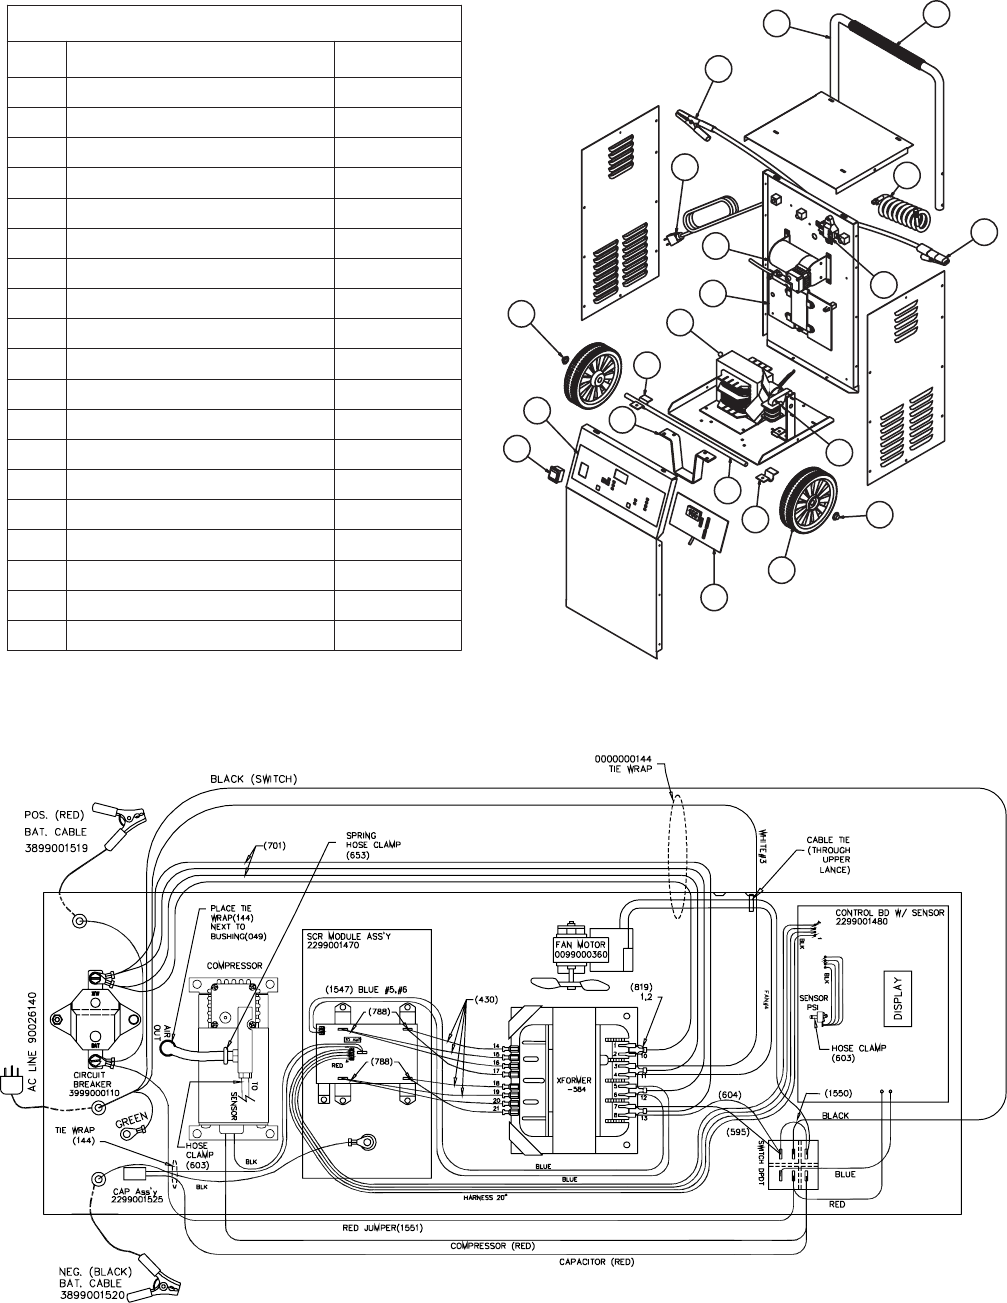 Wiring Diagram For Century Battery Charger : Century battery charger wiring diagram